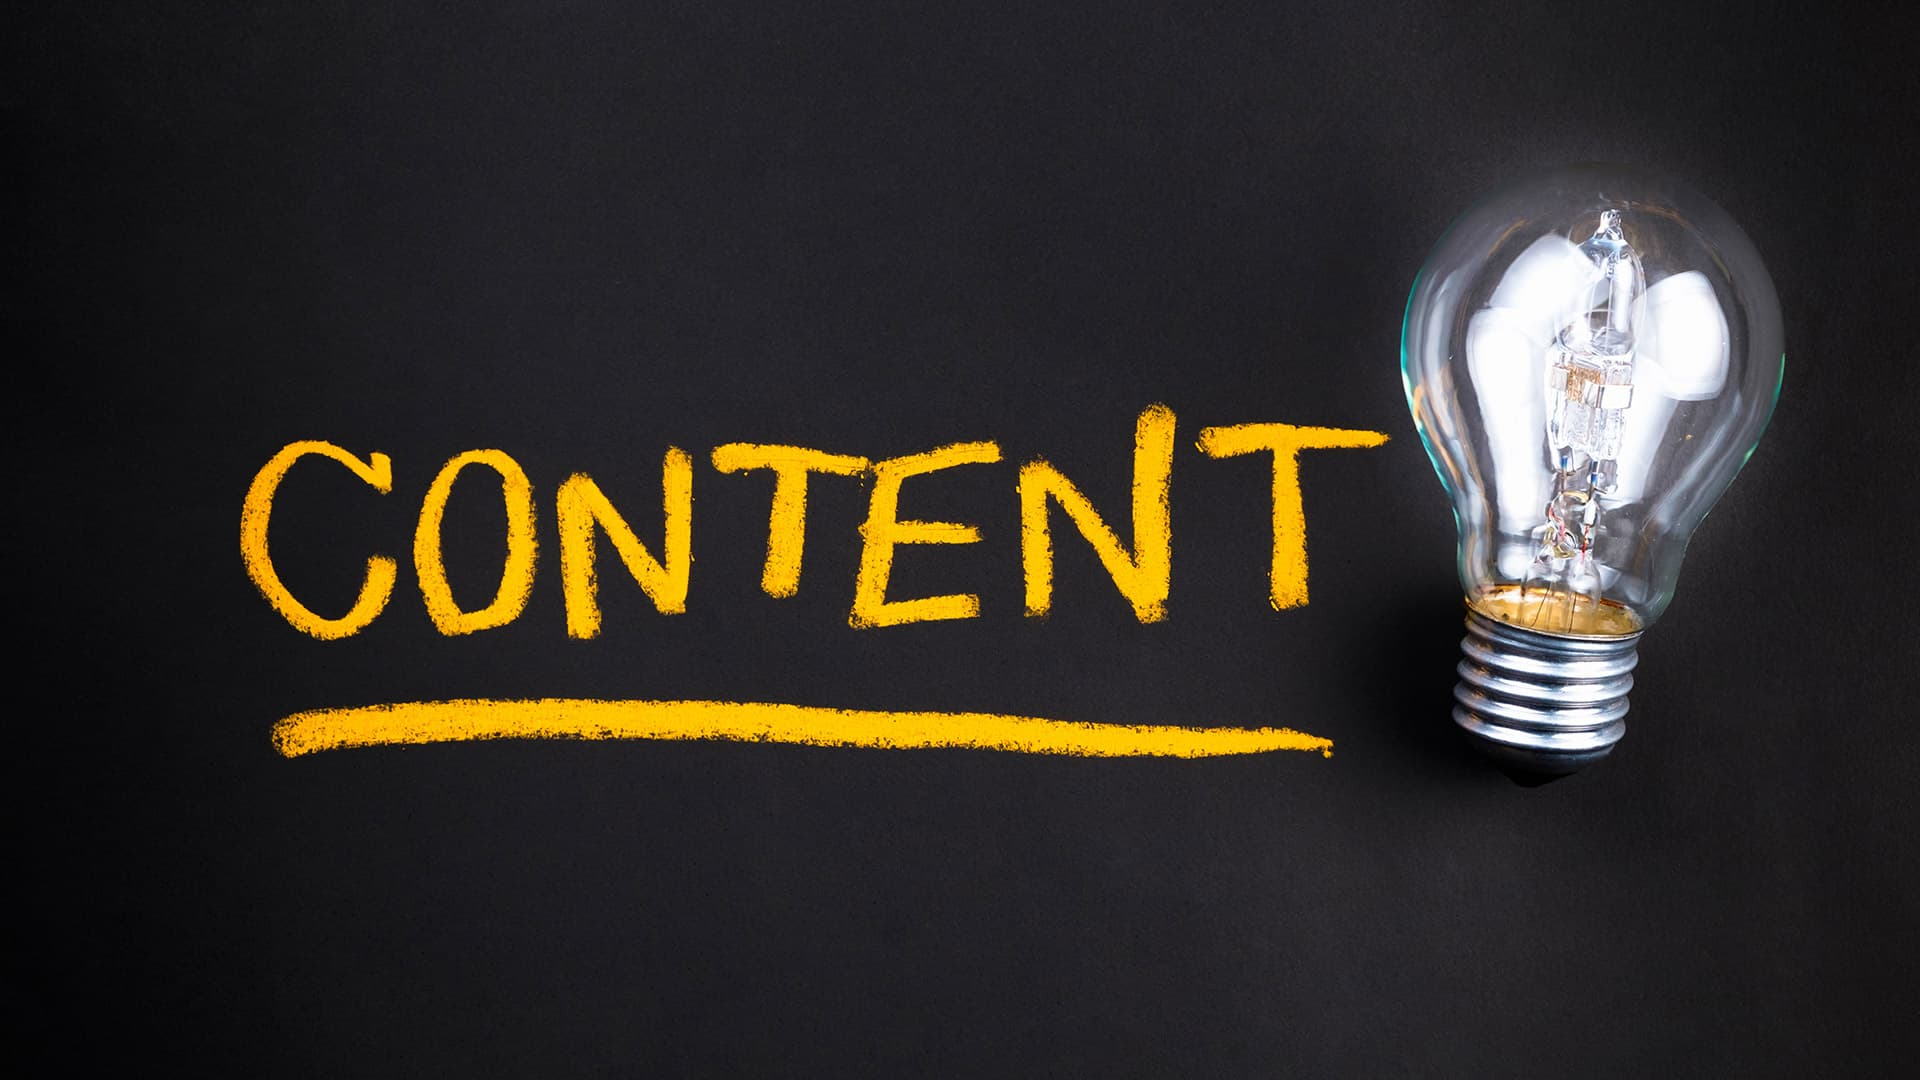 content text with light bulb